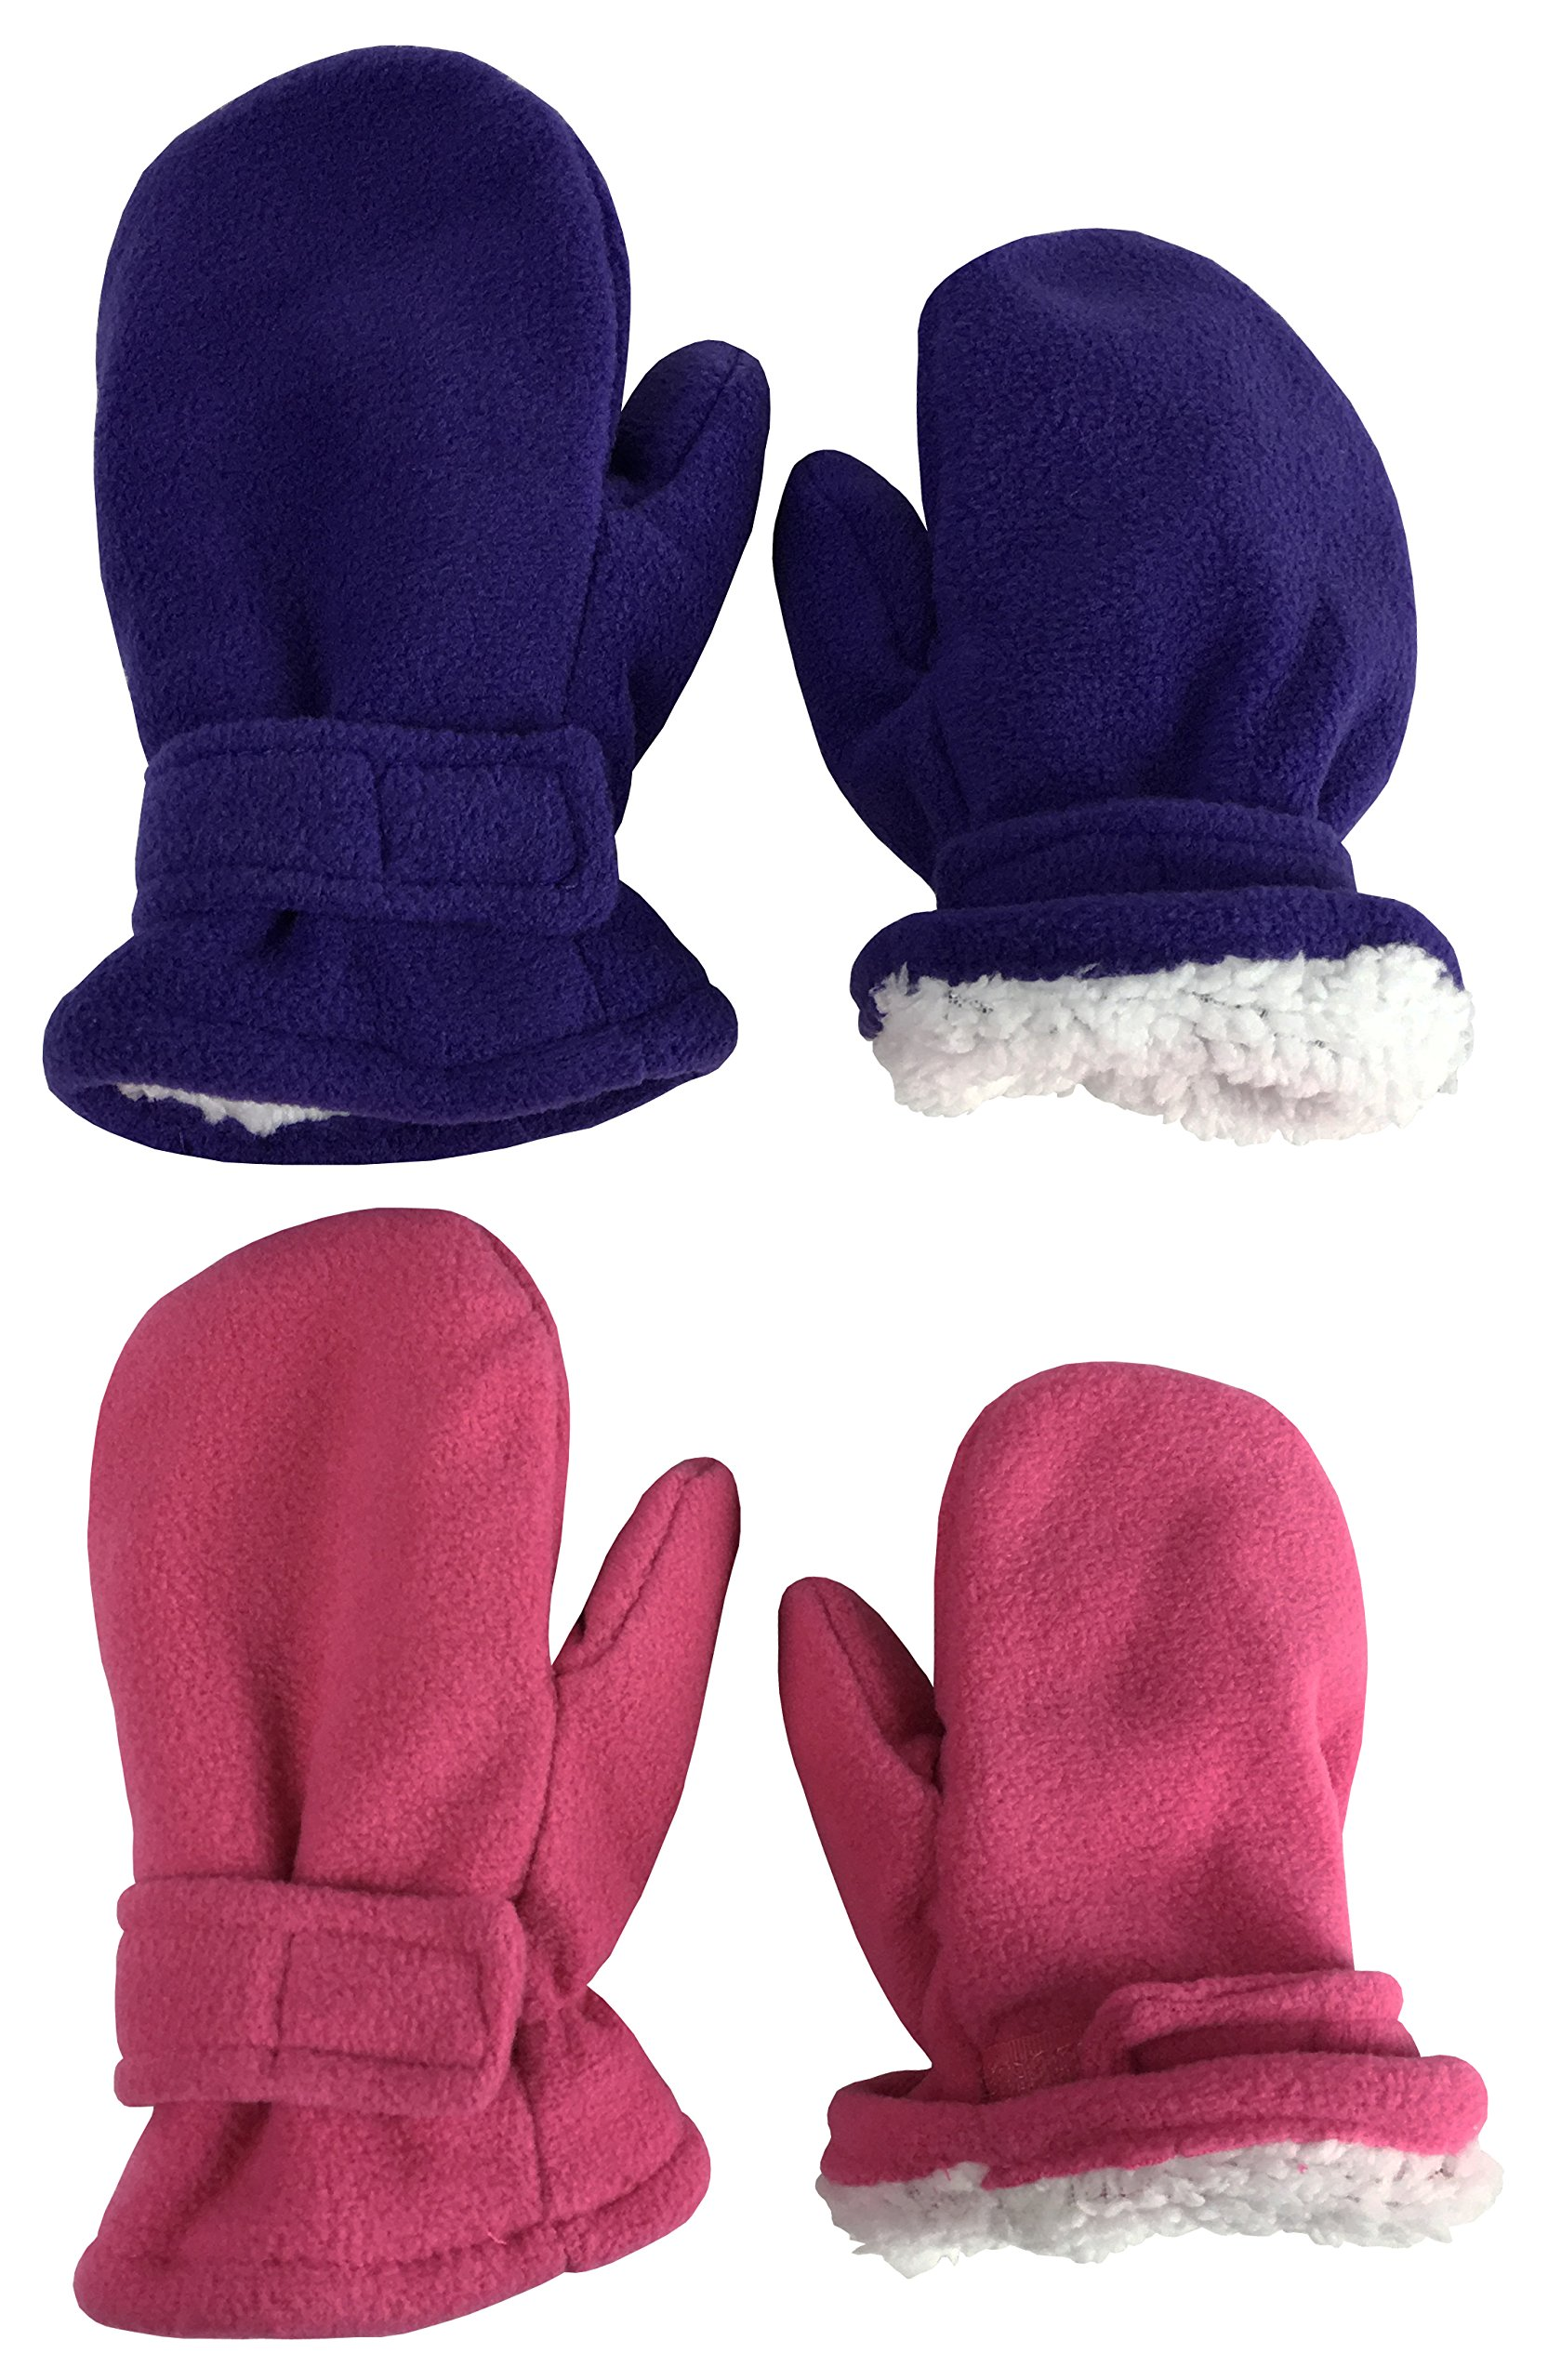 N'Ice Caps Little Kids and Baby Easy-On Sherpa Lined Fleece Mittens - 2 Pair Pack (4-6 Years, Purple/Fuchsia Pack)